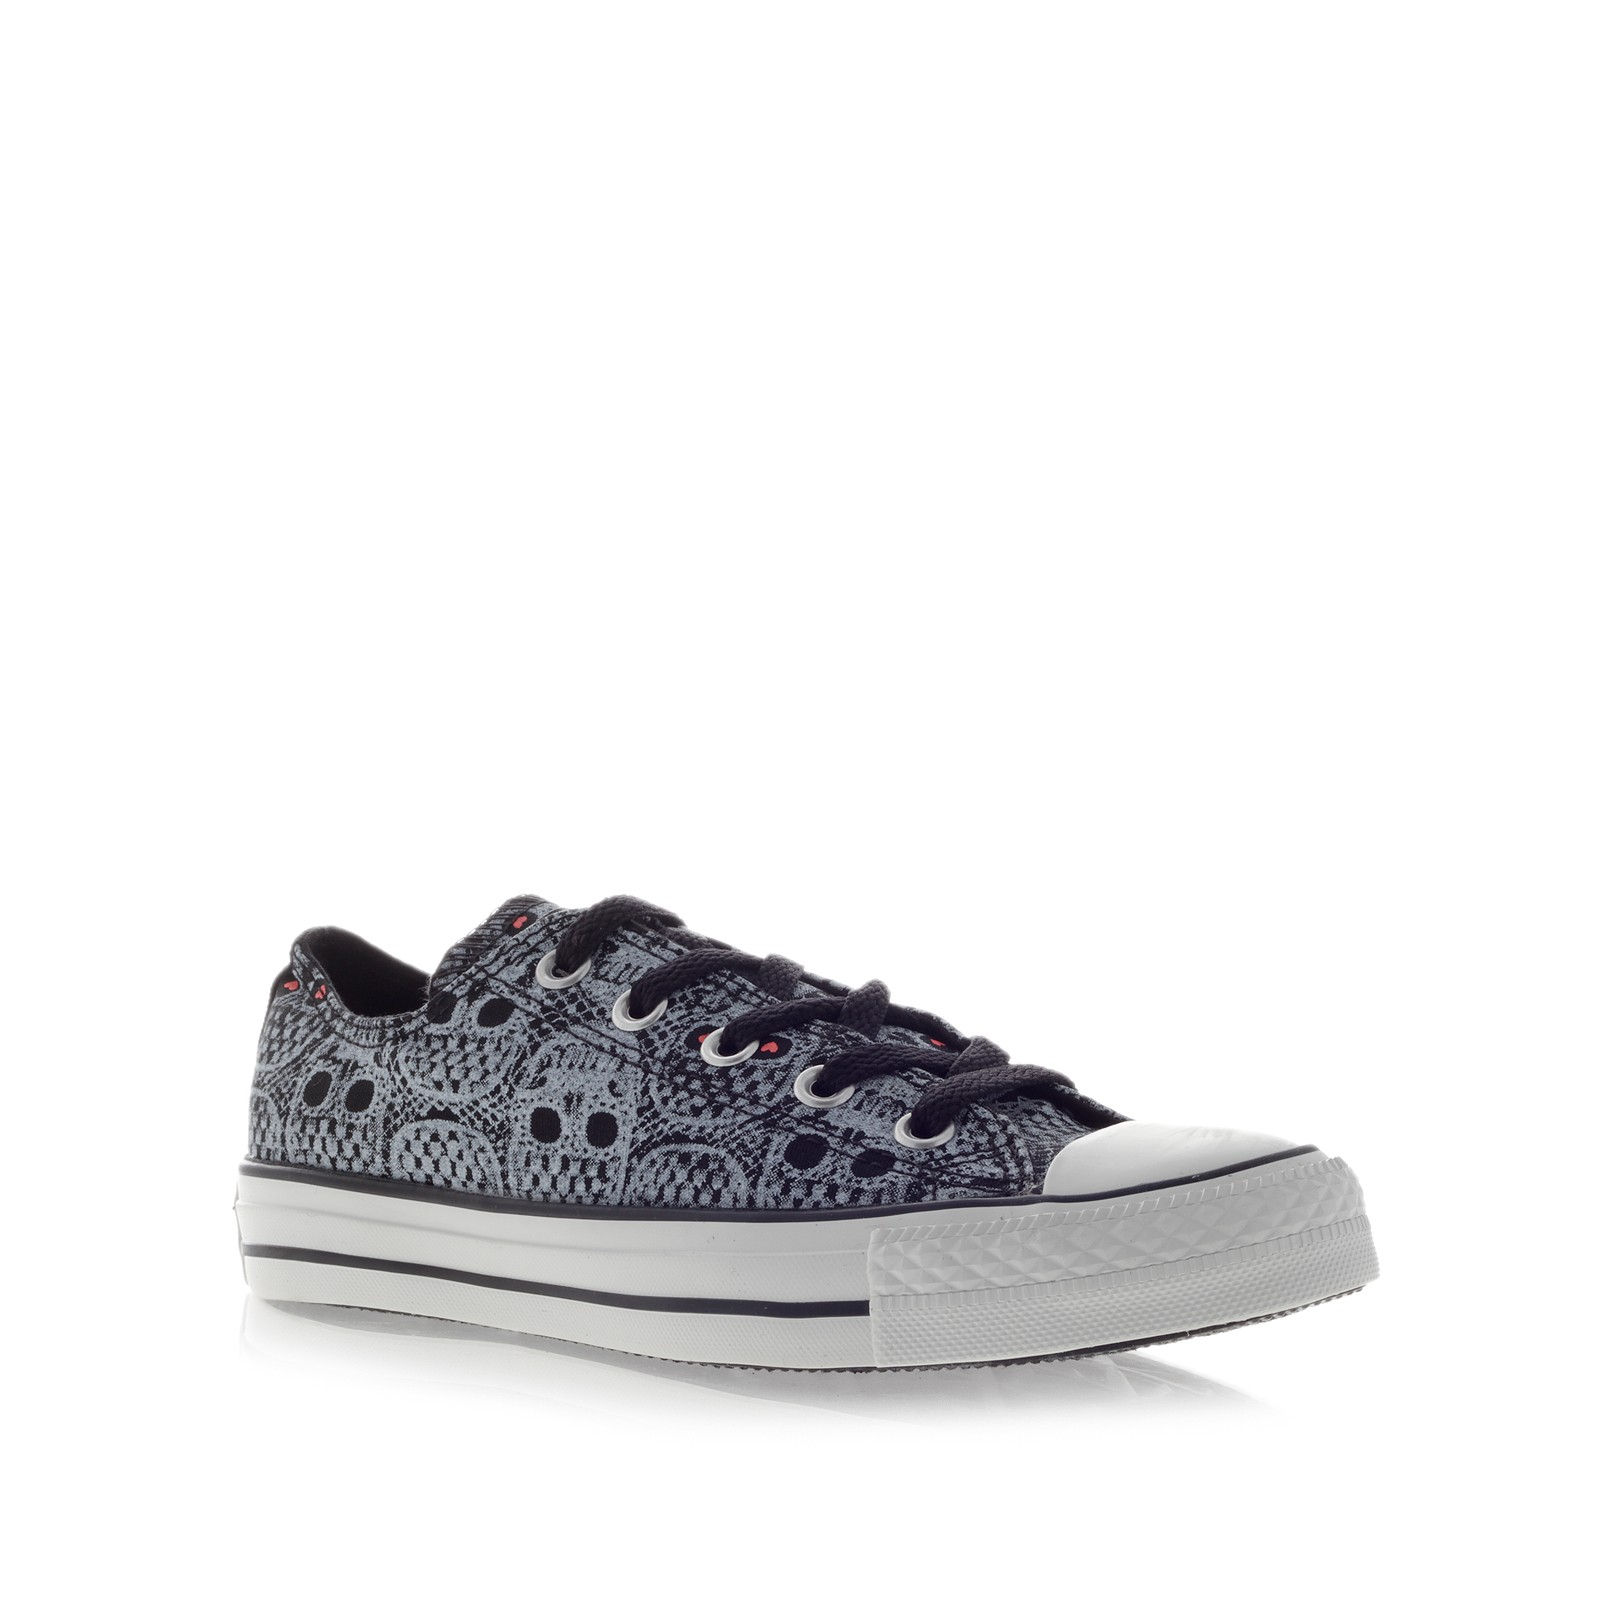 Converse Ct Skull Lace Low in Gray - Lyst 988d91950